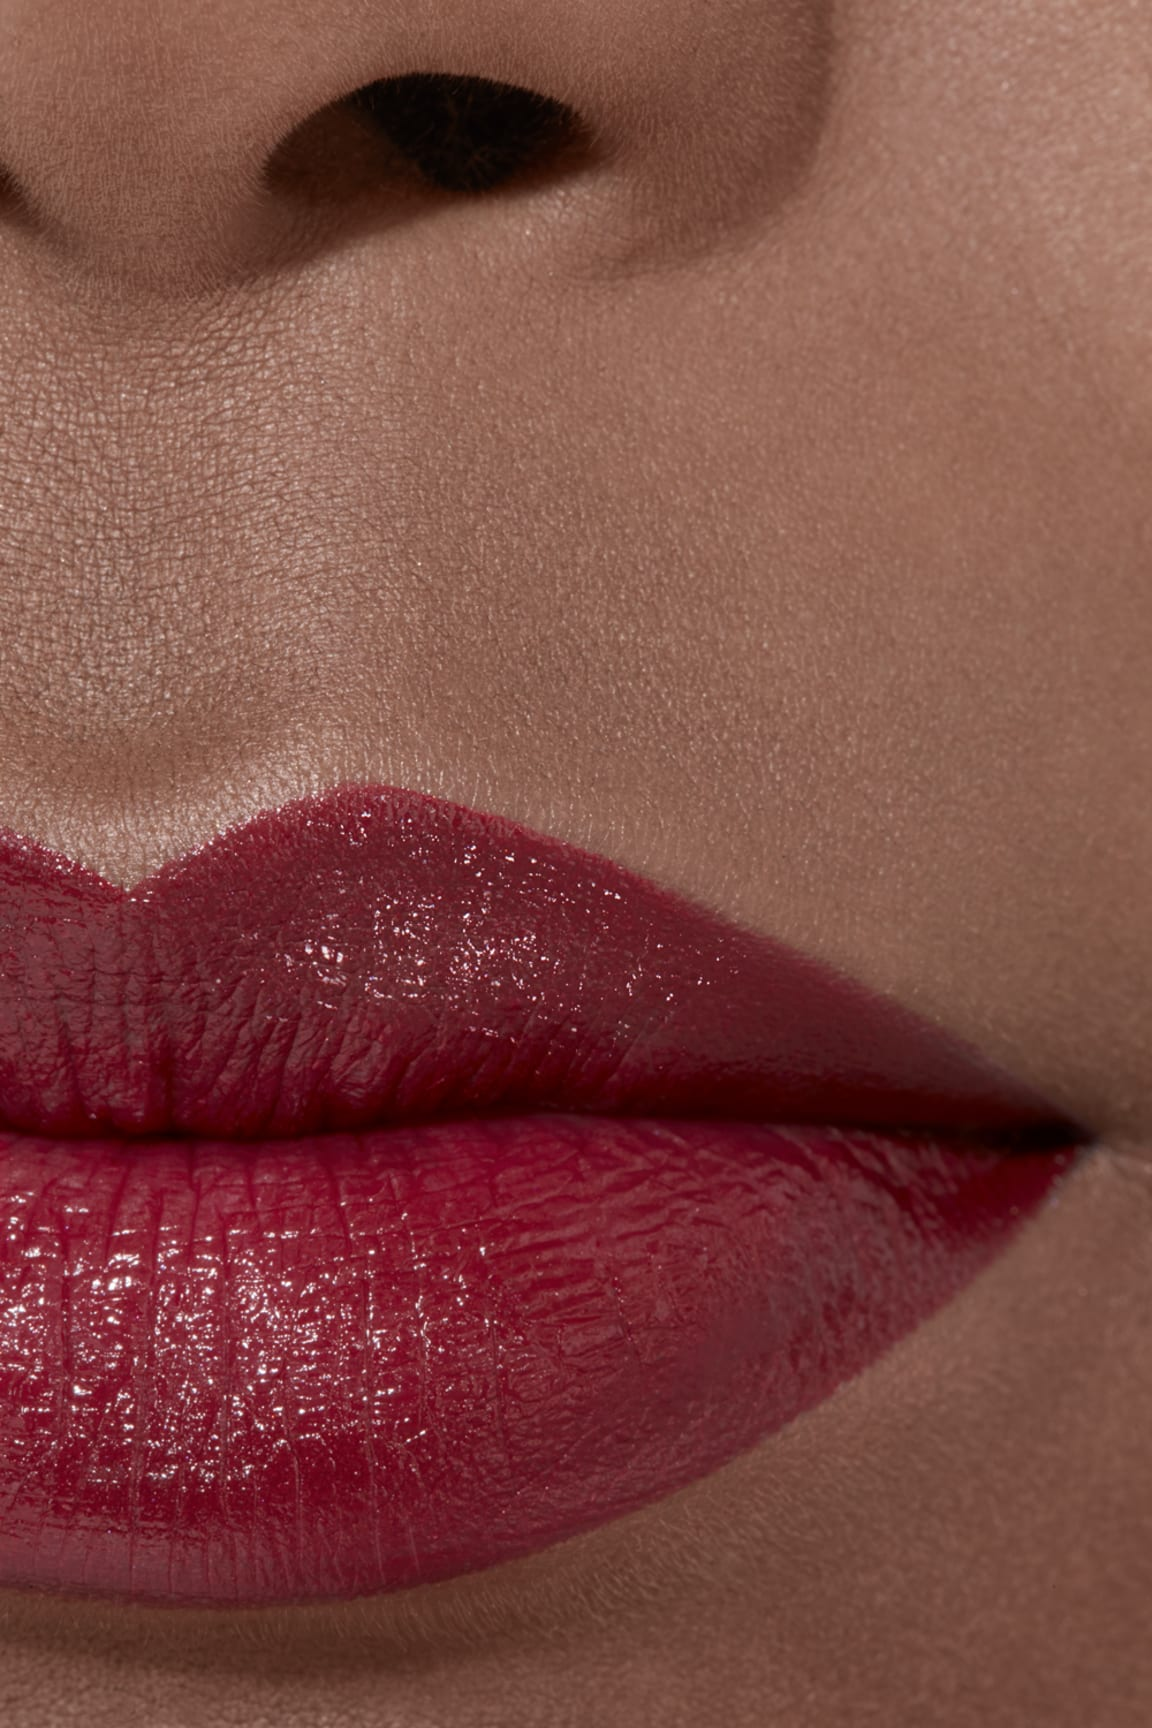 Application makeup visual 2 - ROUGE ALLURE 847 - ROUGE MAJESTUEUX